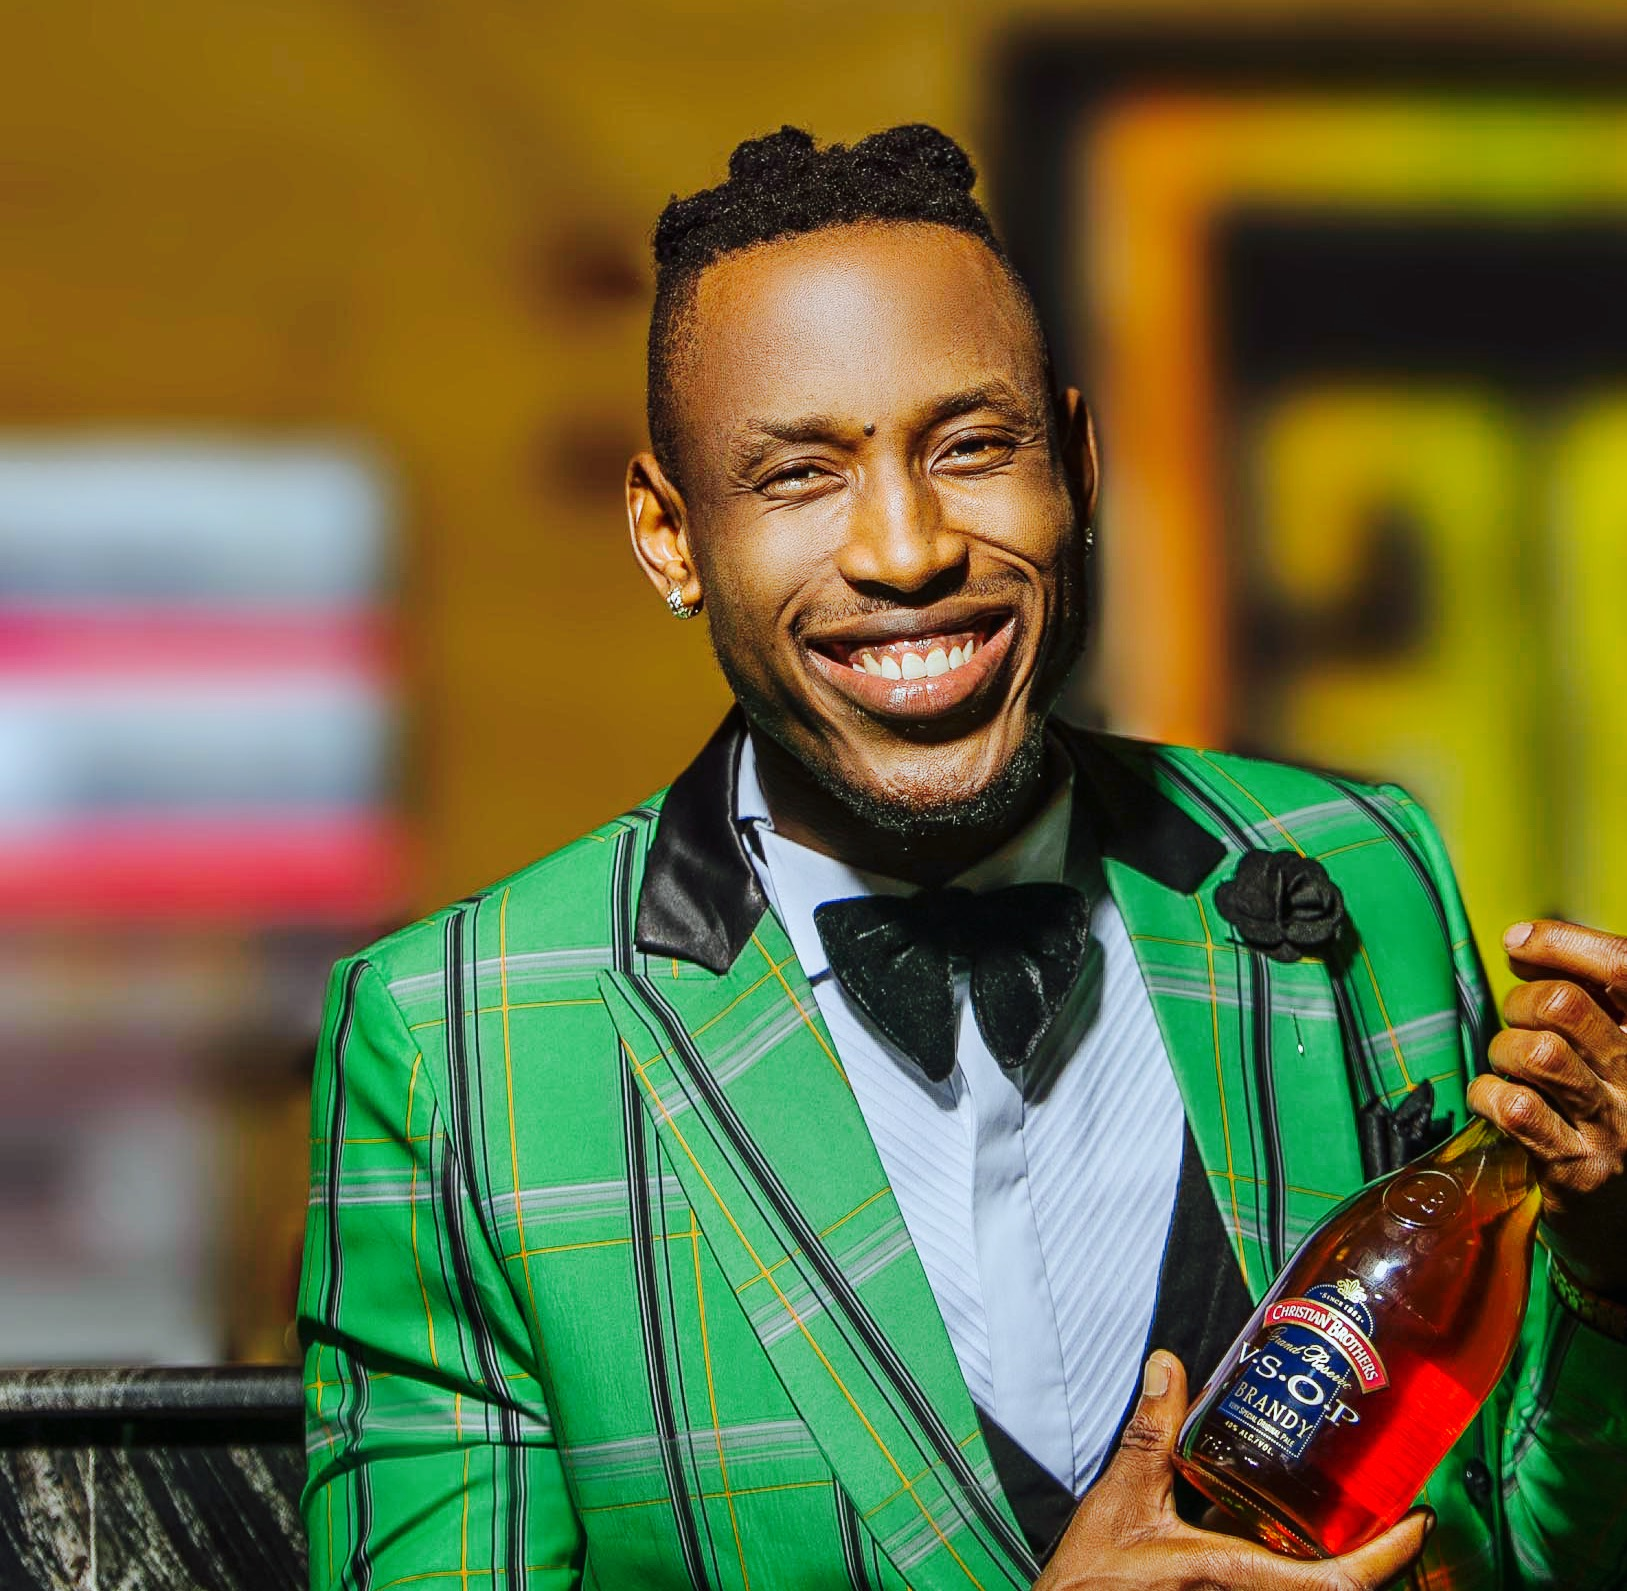 Mr 2kay Signs Multimillion Naira Deal & Set To Tour With The Christian Brothers Brandy